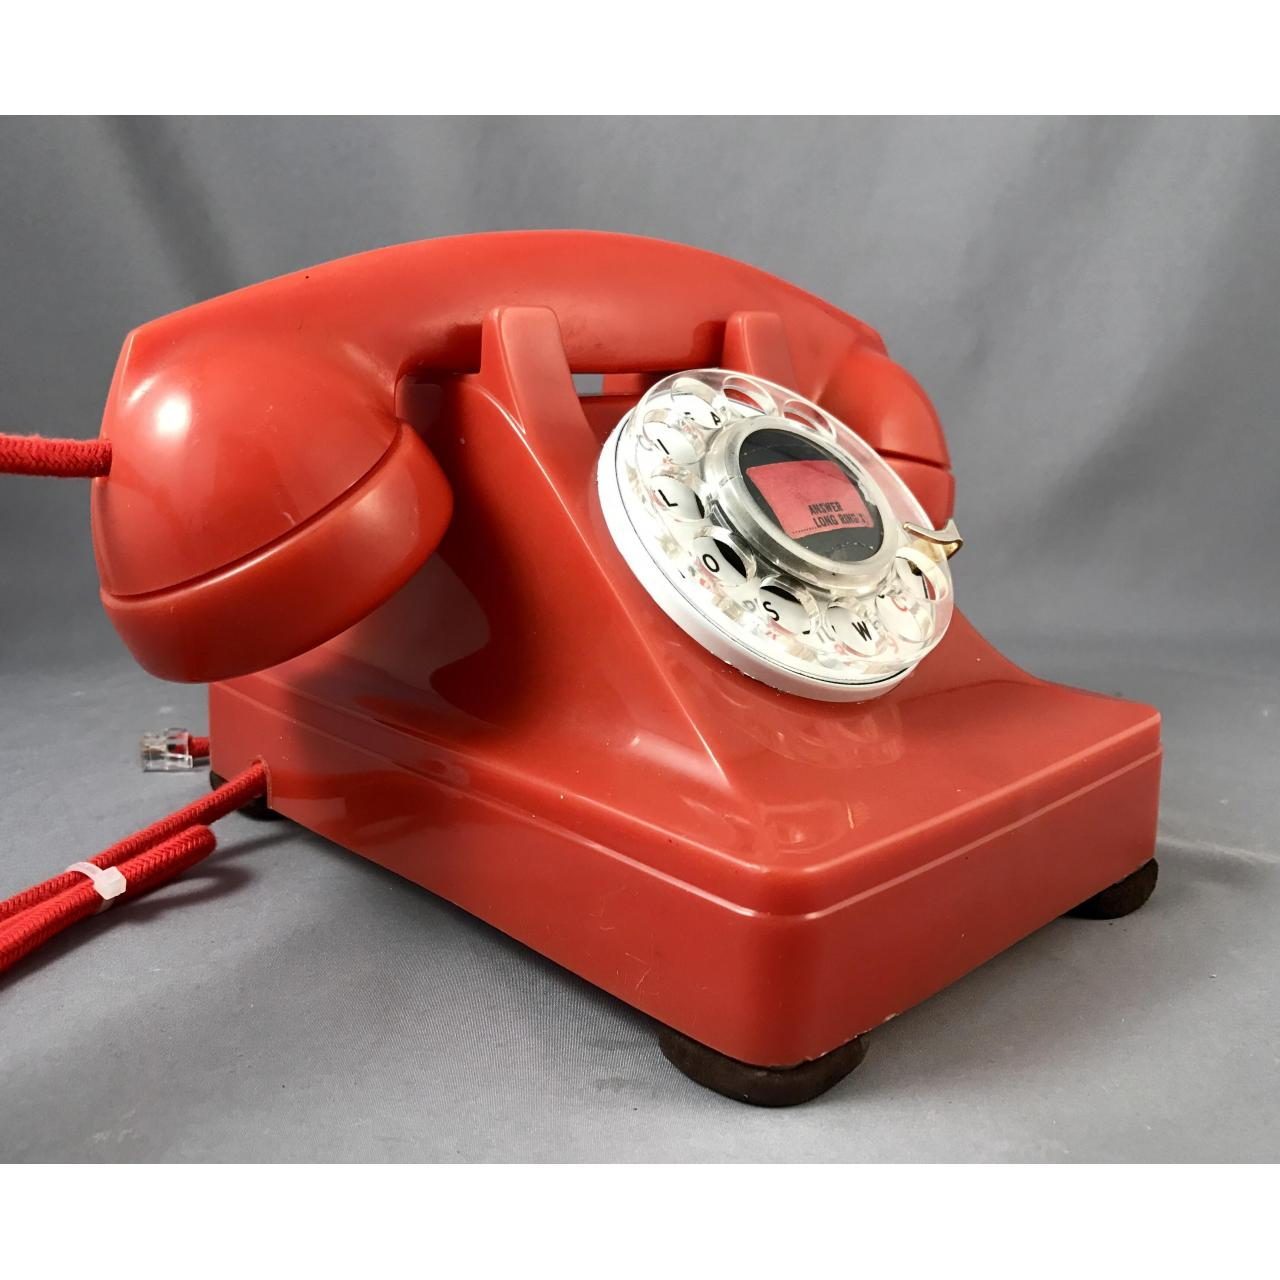 Buy cheap 302 - Red - Fully Refurbished Antique Phones product